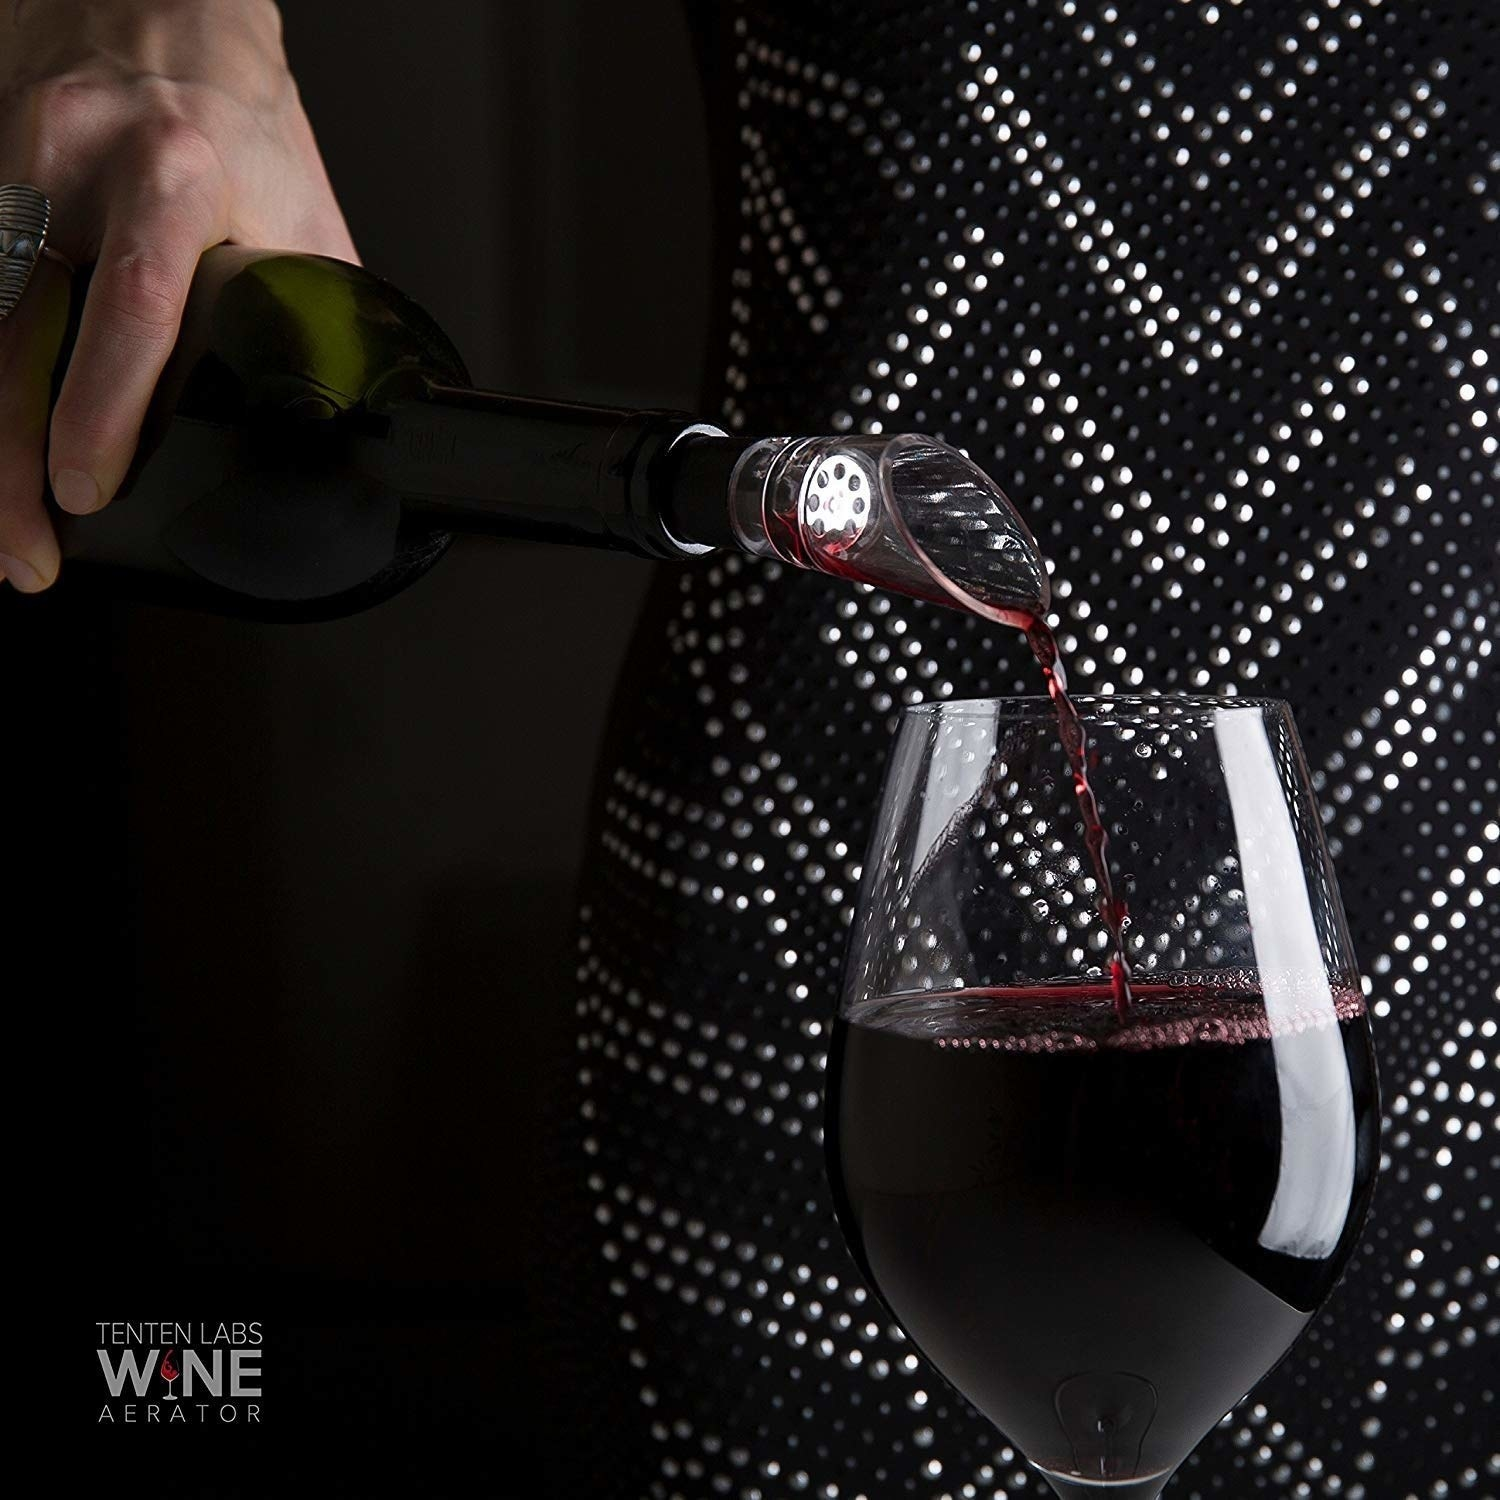 A model pours red wine into a wine glass using the TenTen wine aerator